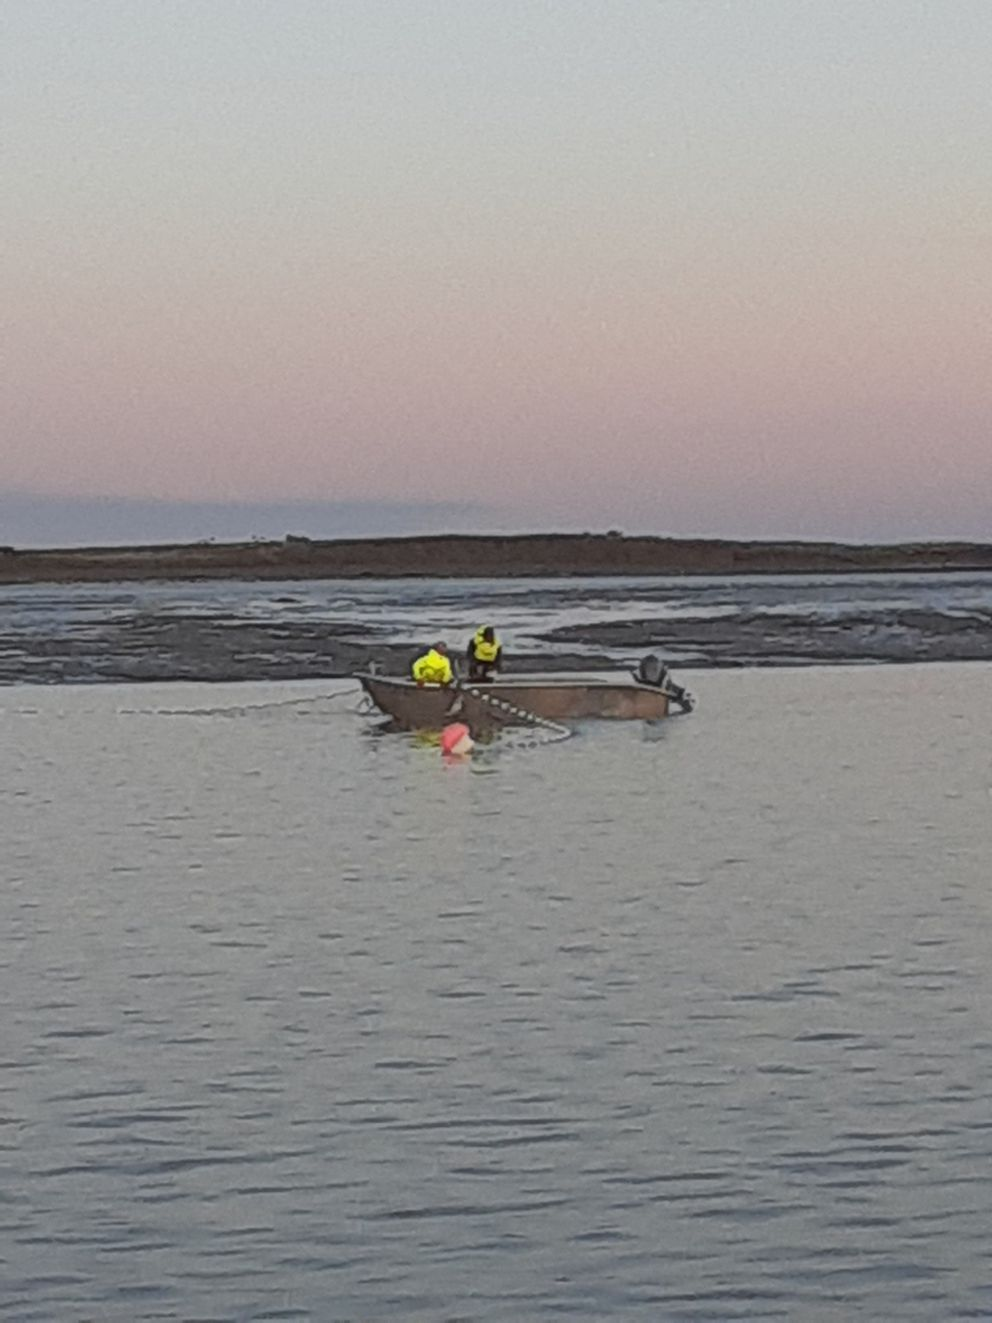 This a fairly typical Bristol Bay setnet operation at mid-tide. It's a 20-foot aluminum skiff powered by a 40-hp outboard motor, but larger skiffs are becoming more common. (Photo by John Schandelmeier)